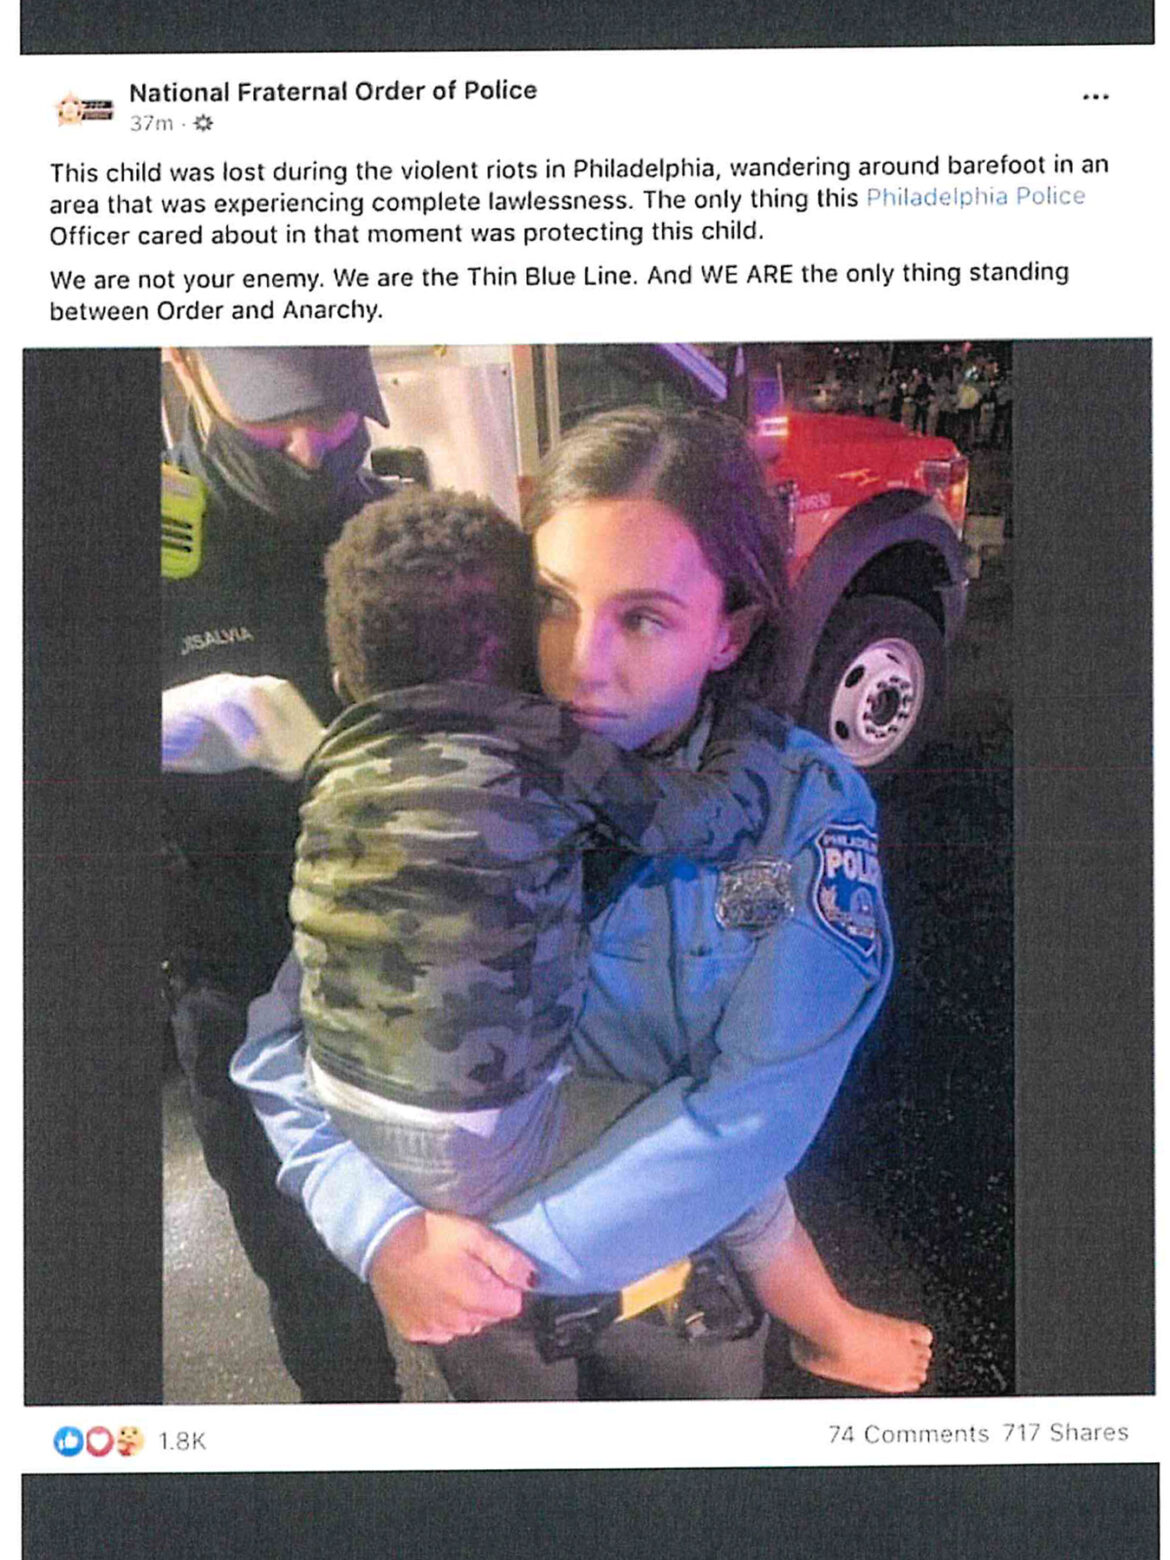 Beaten and Maligned by Police, a Philadelphia Mom Seeks Justice Over a Thin Blue Lie